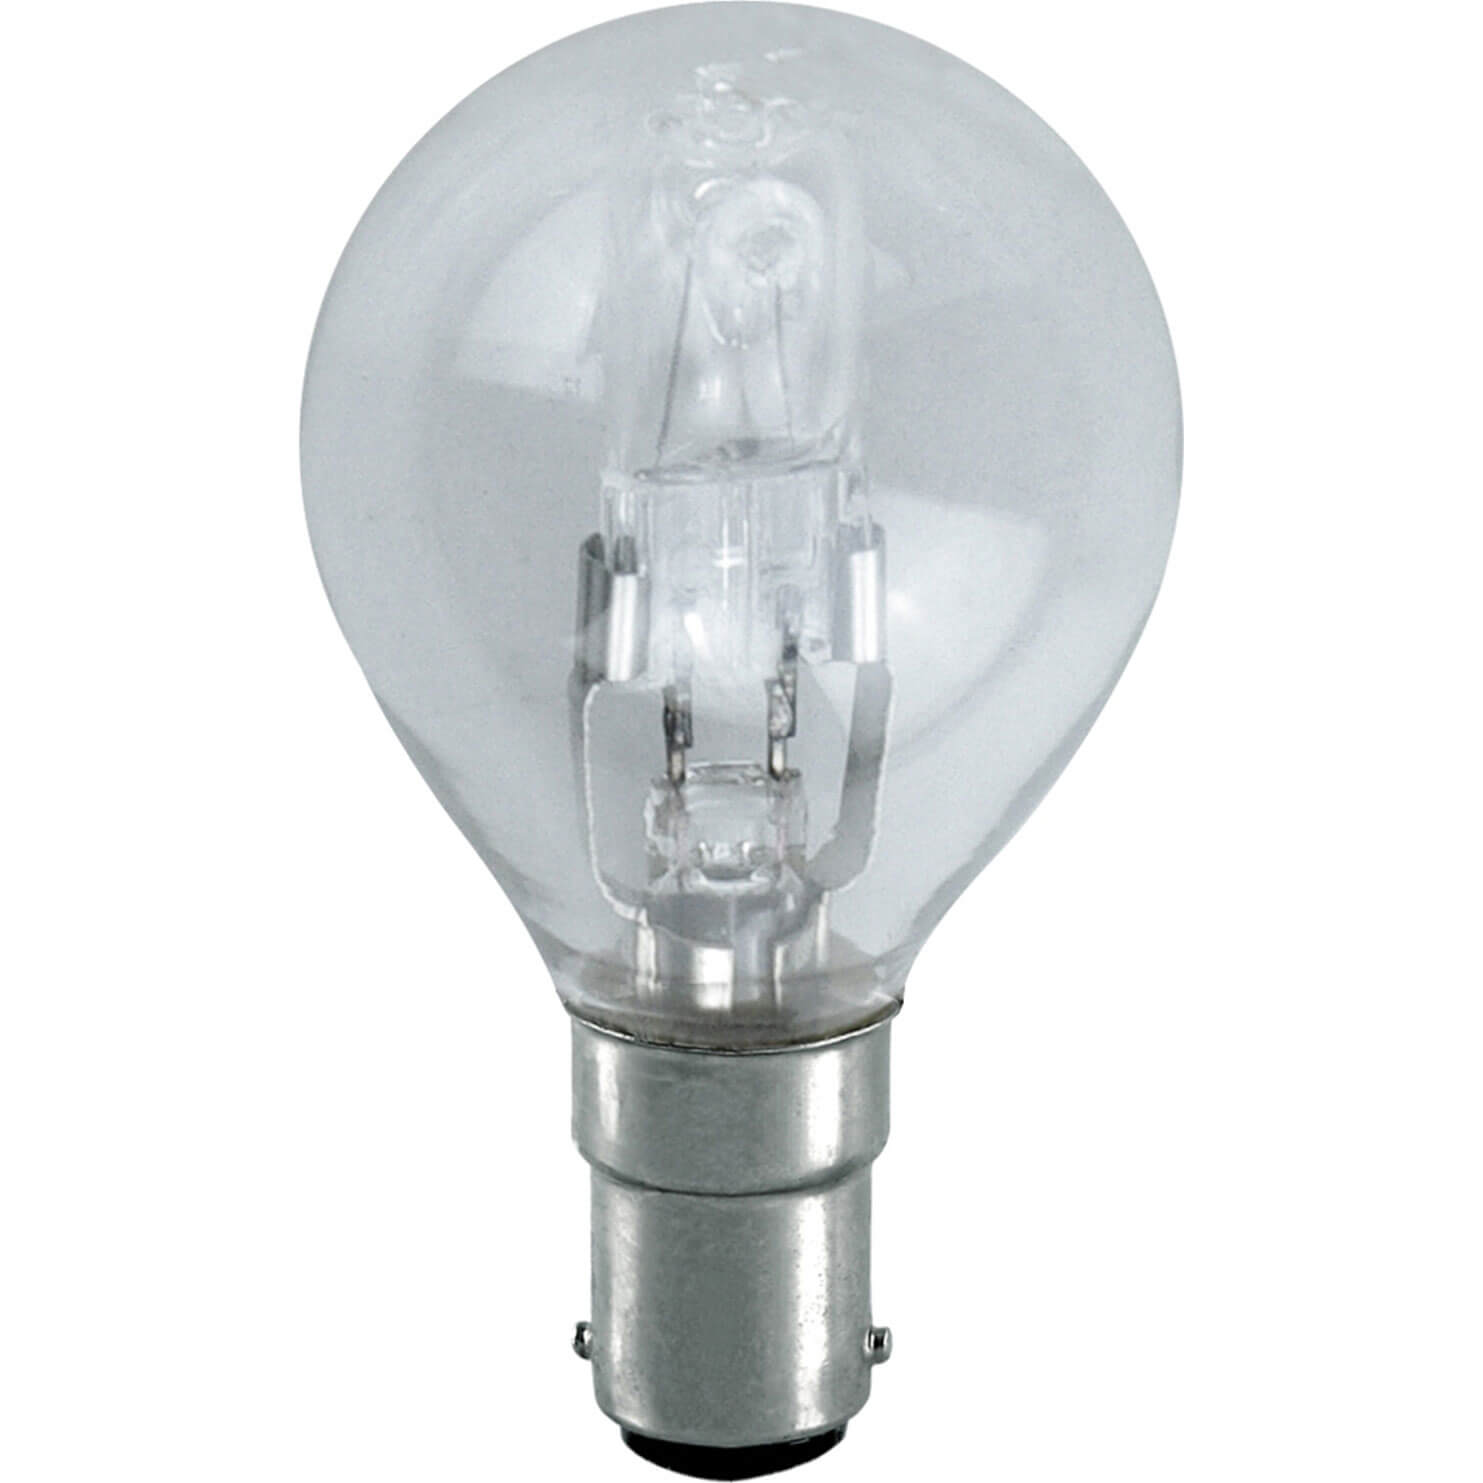 Image of Eveready Energy Save G45 Halogen Golf Bulb SBC / B15 Small Bayonet Cap 28w